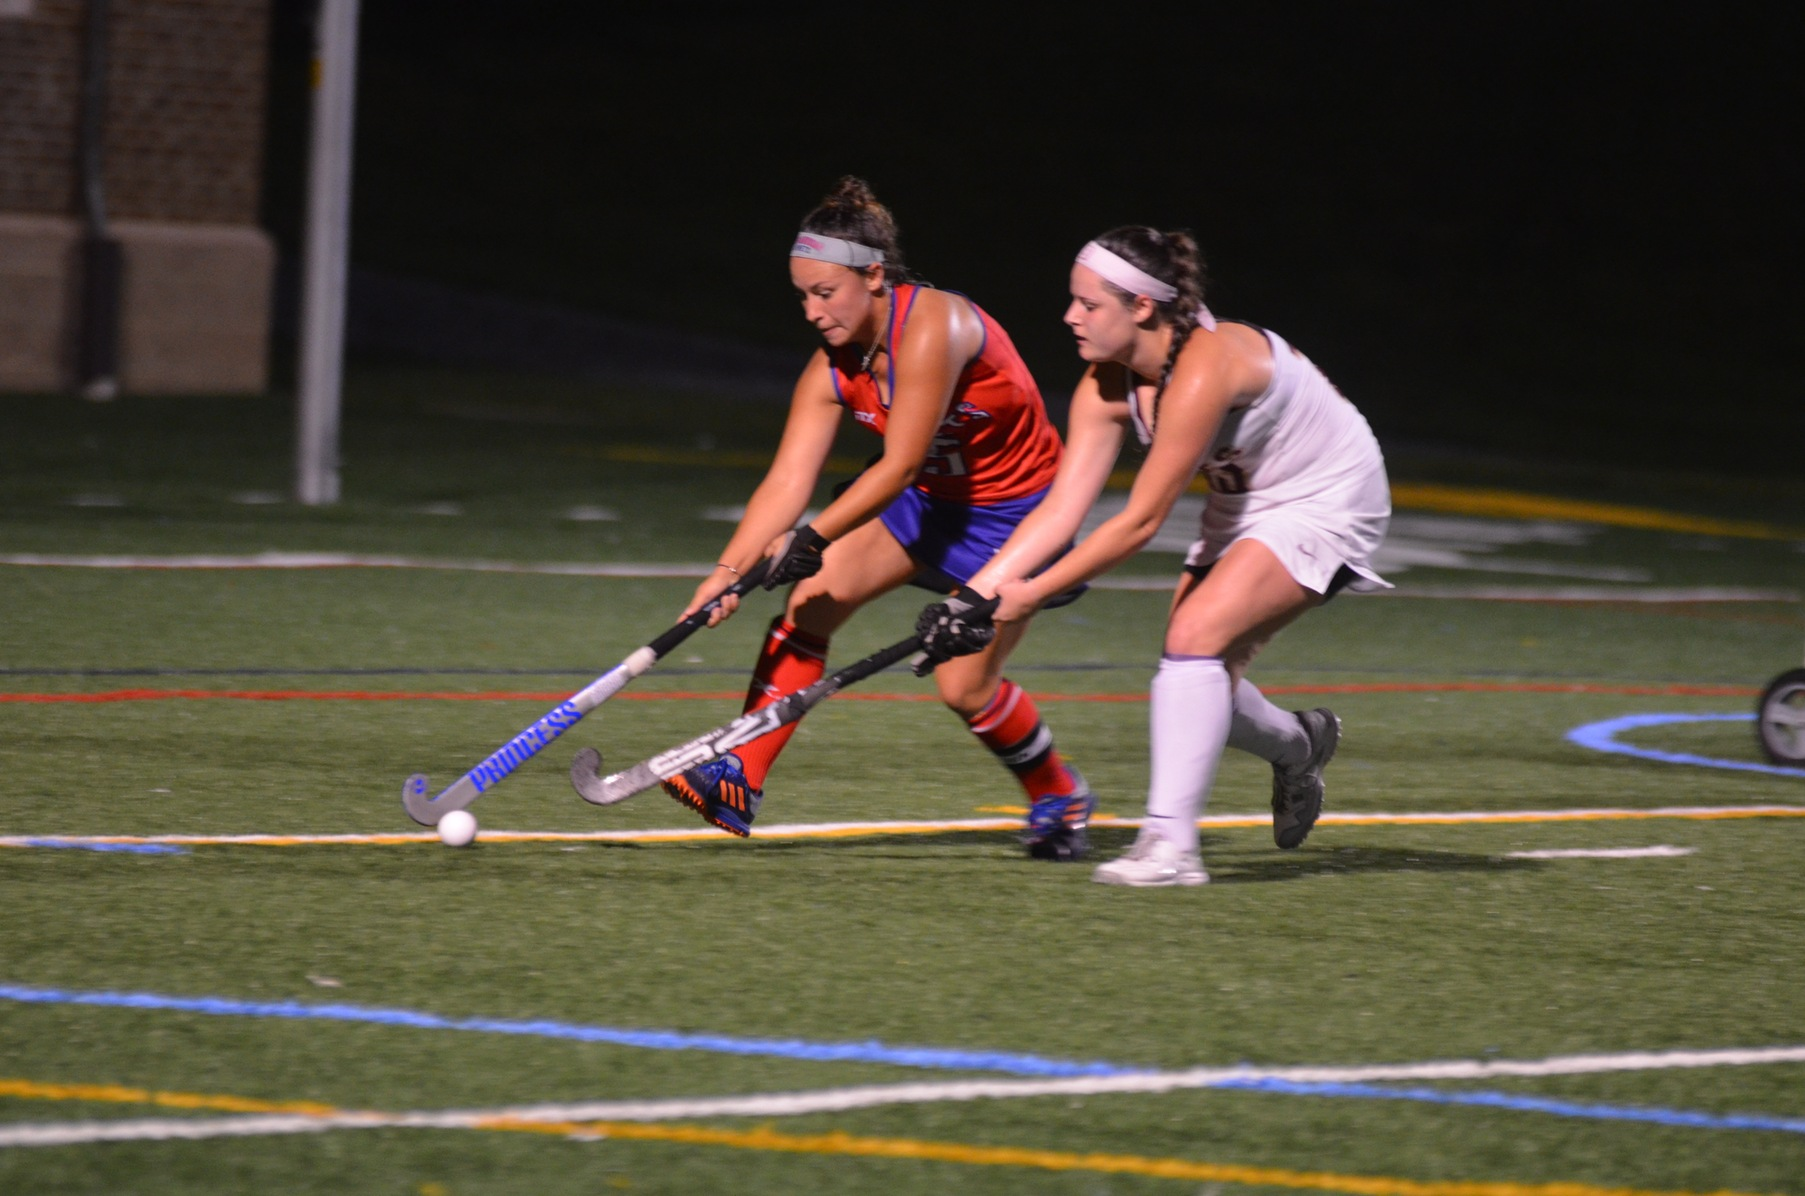 Senior Morgan Payne redirected a Kelsey Jones shot up and over the Bridgewater goalie to score the game winning goal.